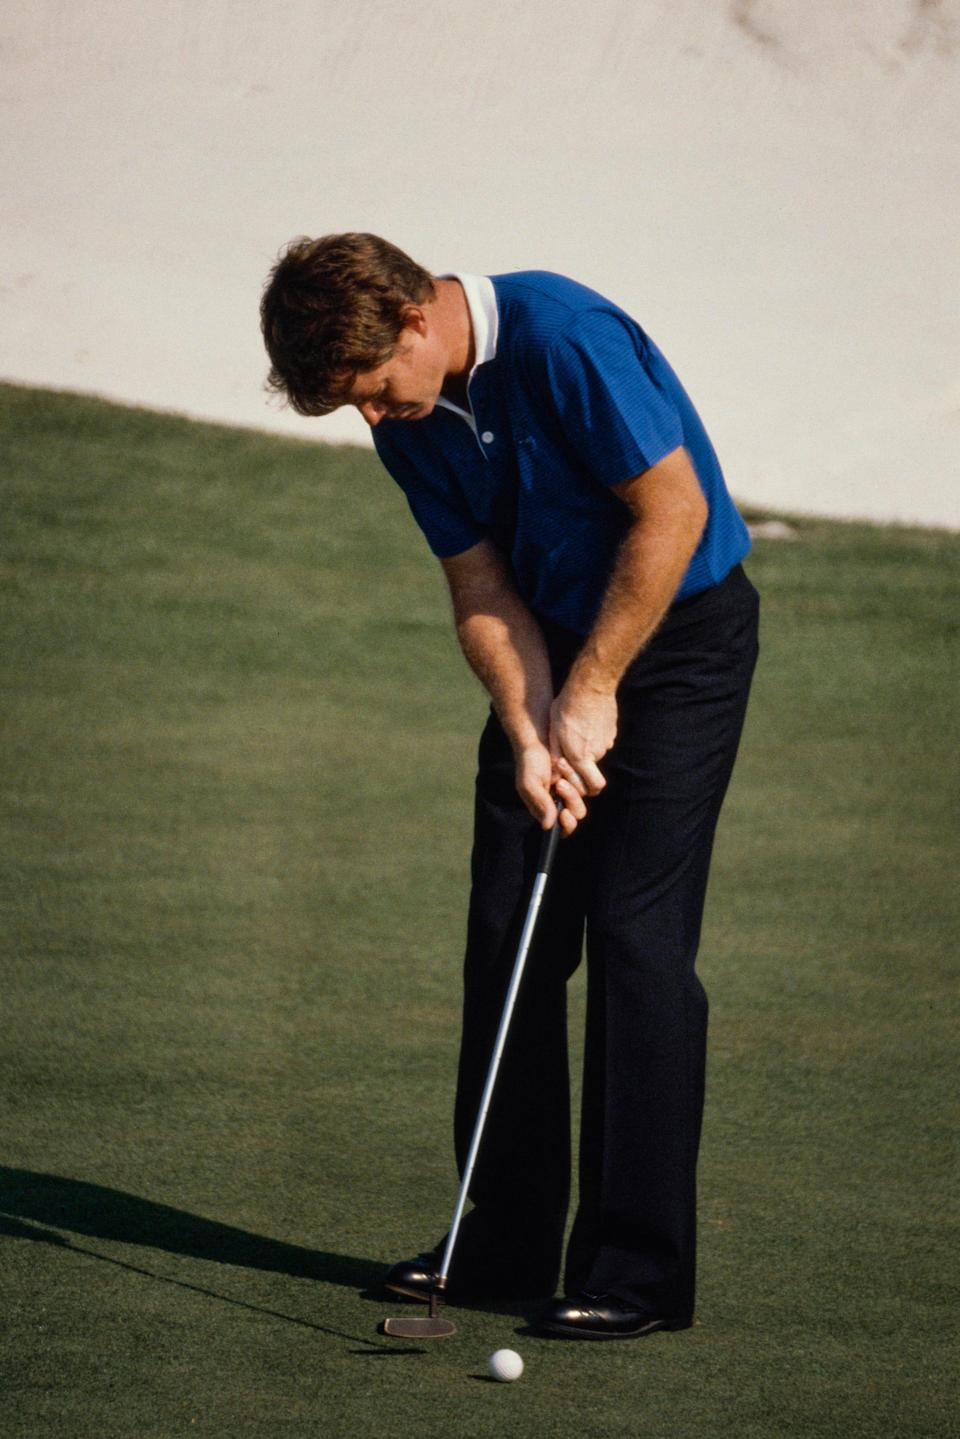 Tom Watson makes a putt at Augusta National on Friday, April 10, 1981.